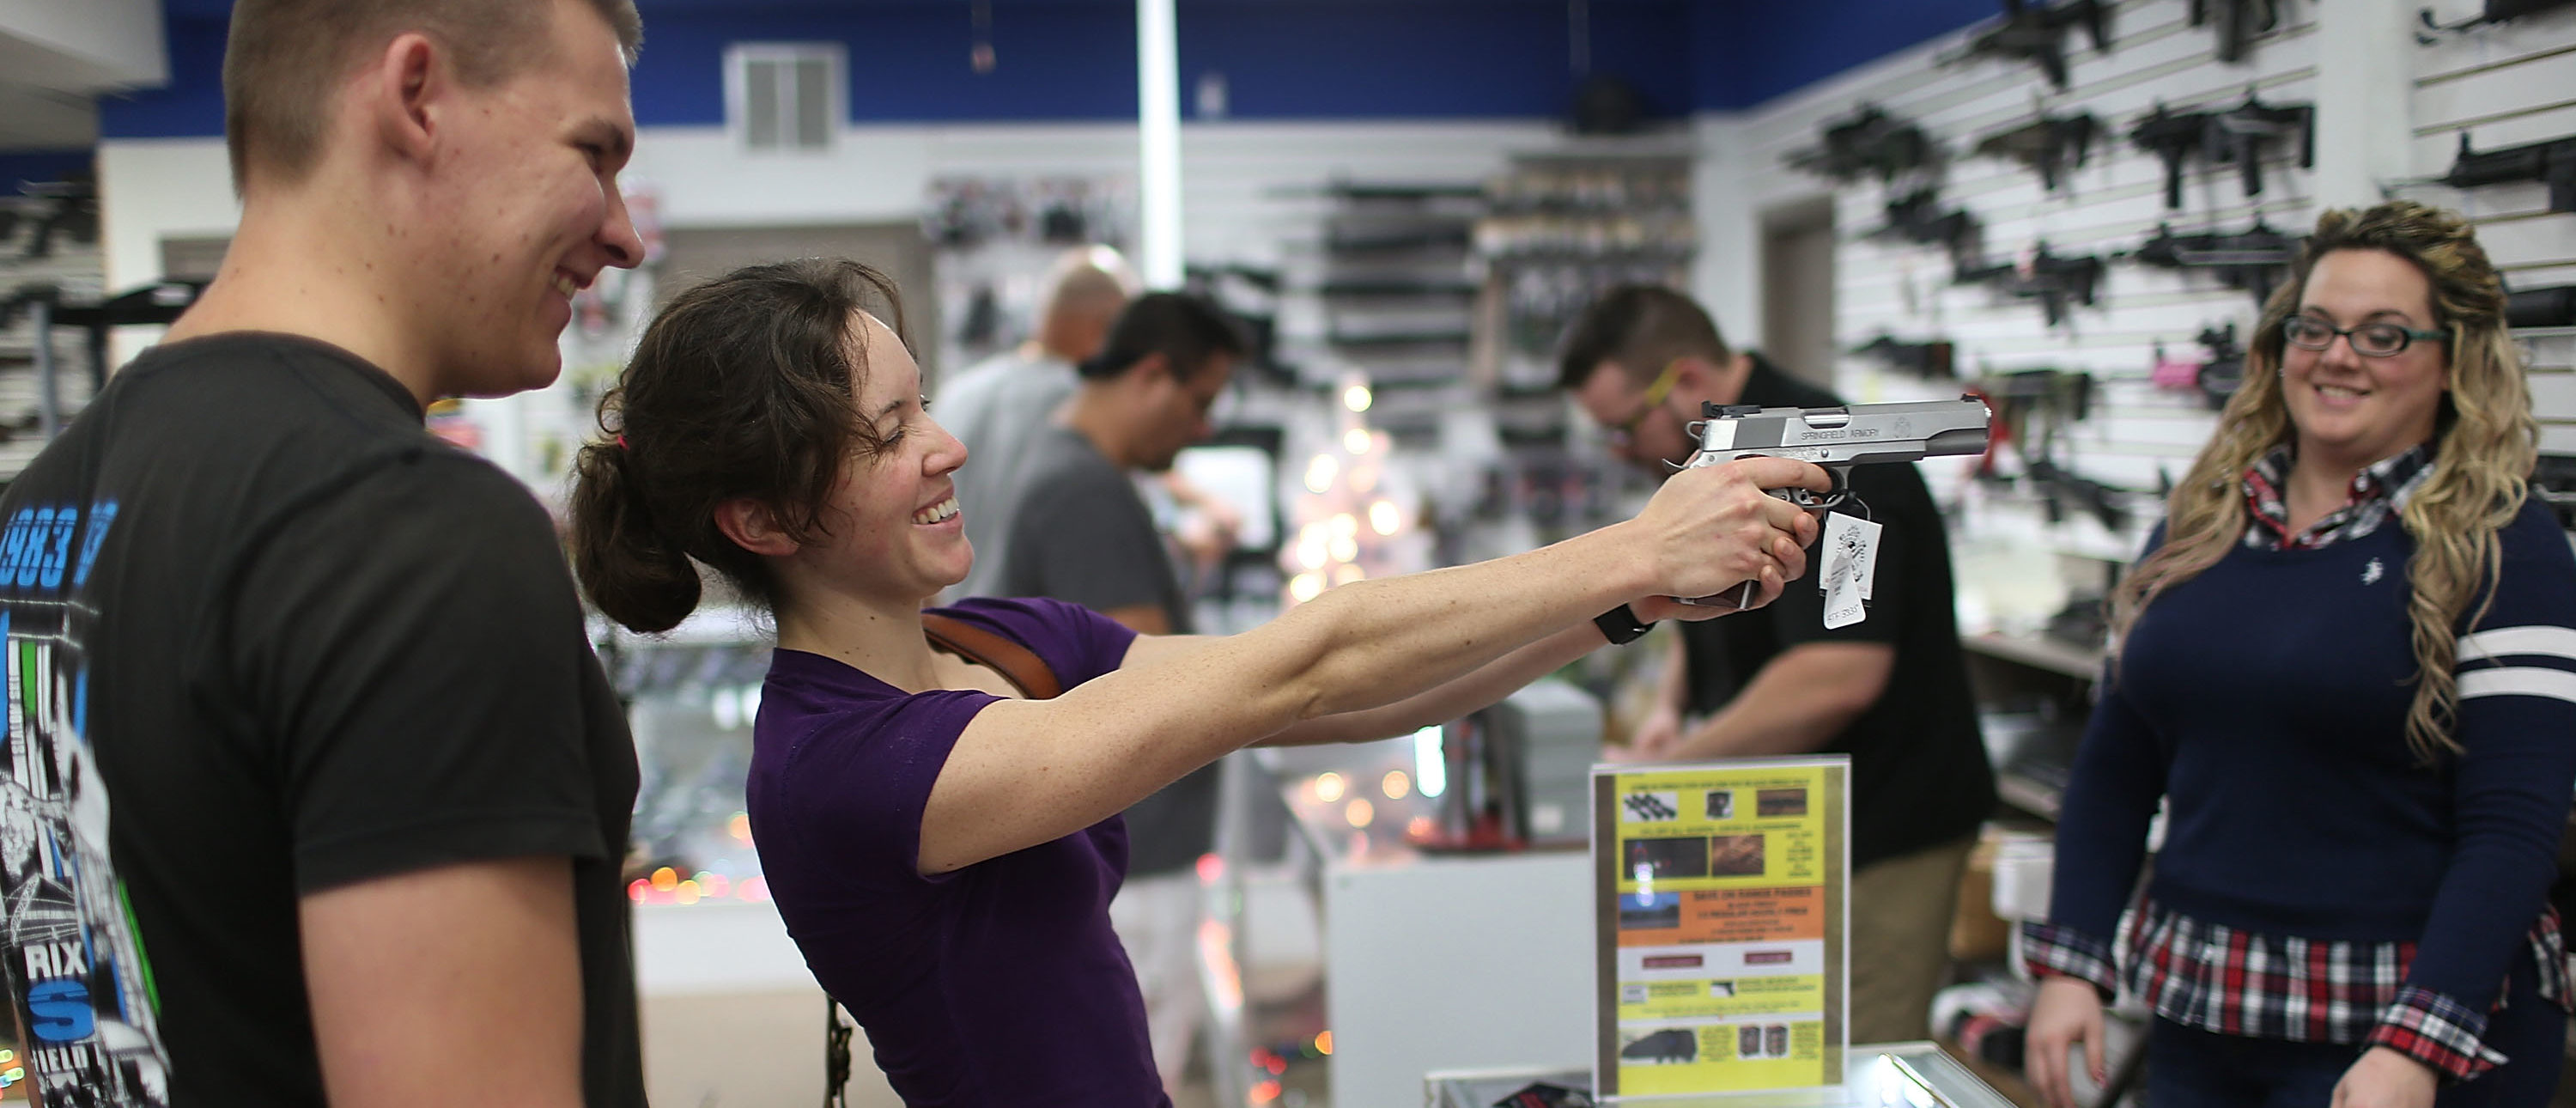 POMPANO BEACH, FL - DECEMBER 23:  Vesta Parks checks out a handgun as she prepares to buy Tim Schneider (L) one as a Christmas present at the National Armory gun store on December 23, 2015 in Pompano Beach, Florida. F.B.I. stats indicate that gun sales have increased dramatically this year, as reports indicate that firearms are a popular choice for a holiday present.  (Photo by Joe Raedle/Getty Images)